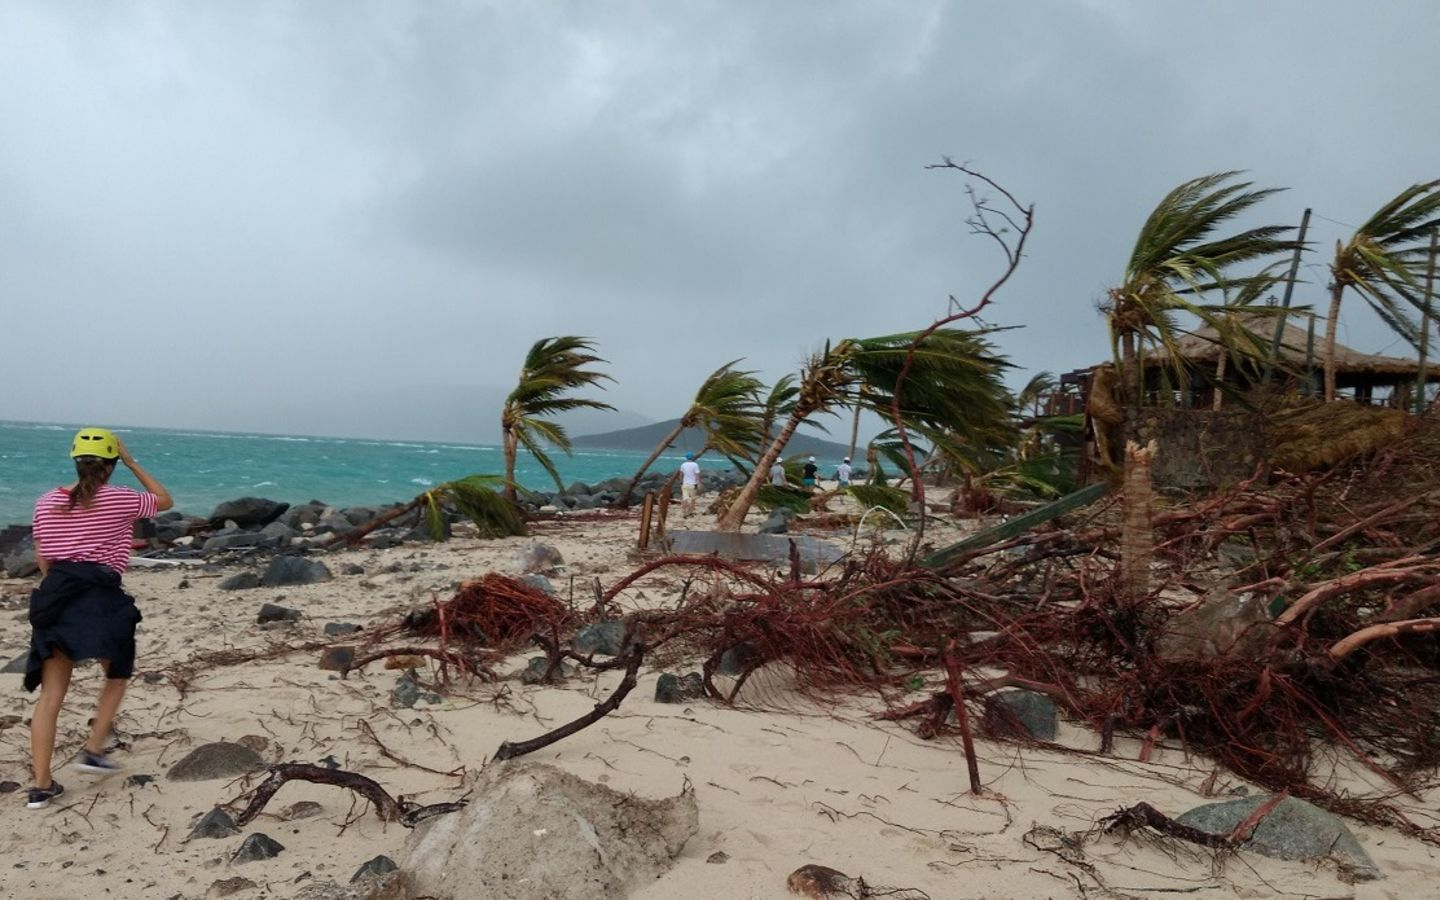 Destroyed trees on the beach